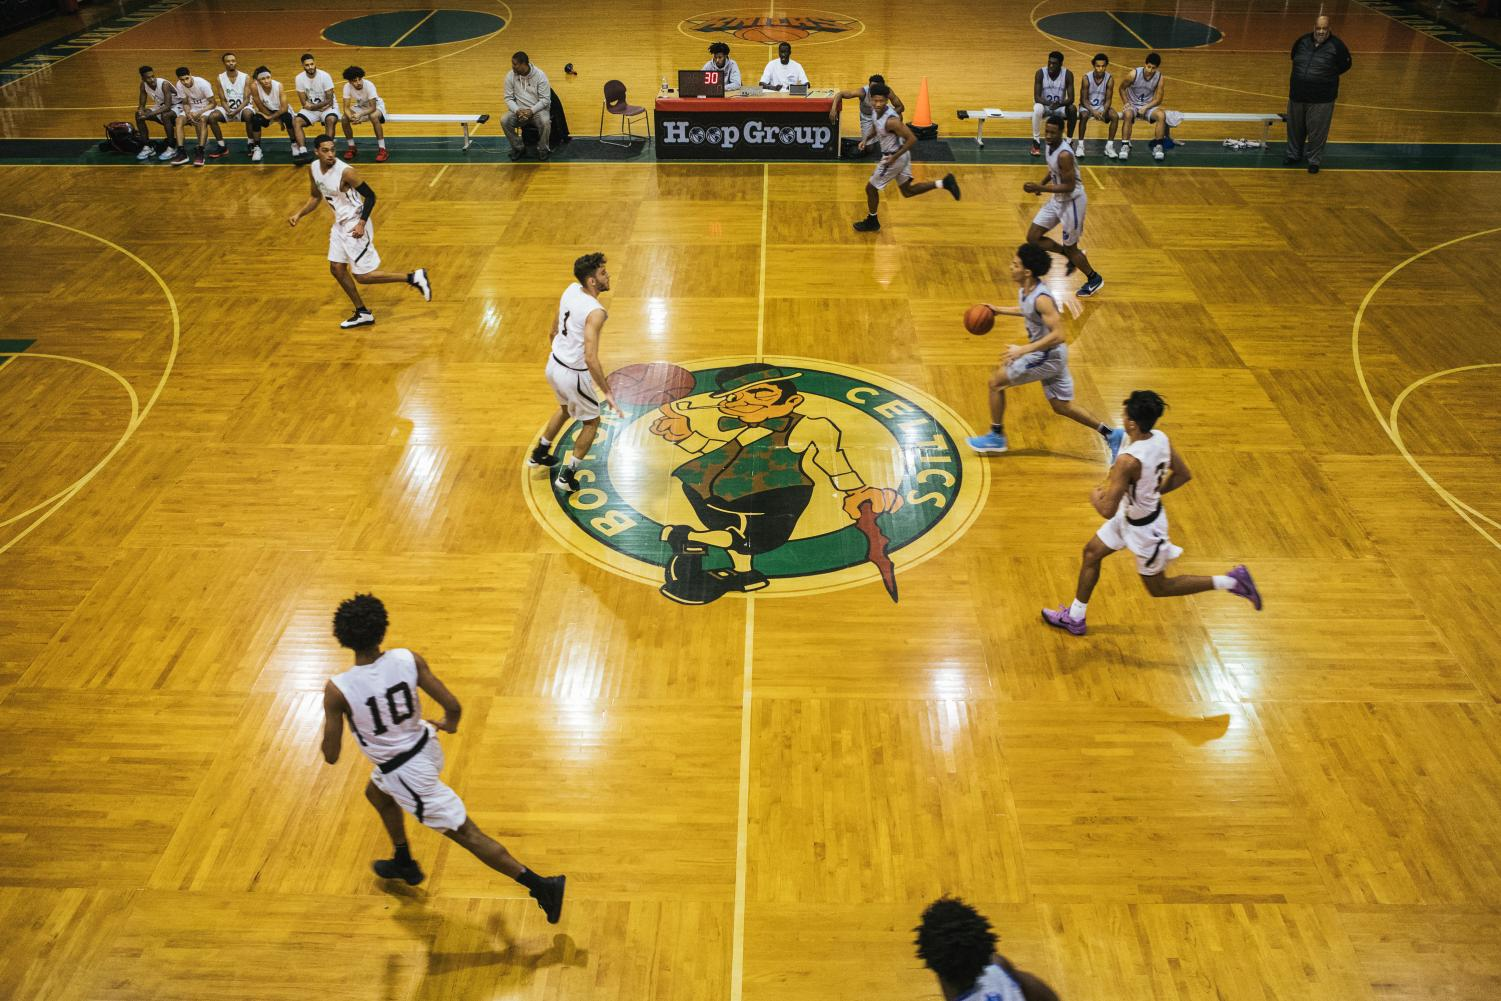 Rocktop Academy plays against Covenant College Prep during an afternoon game at Hoop Group in Neptune, New Jersey. Rocktop lost to Covenant